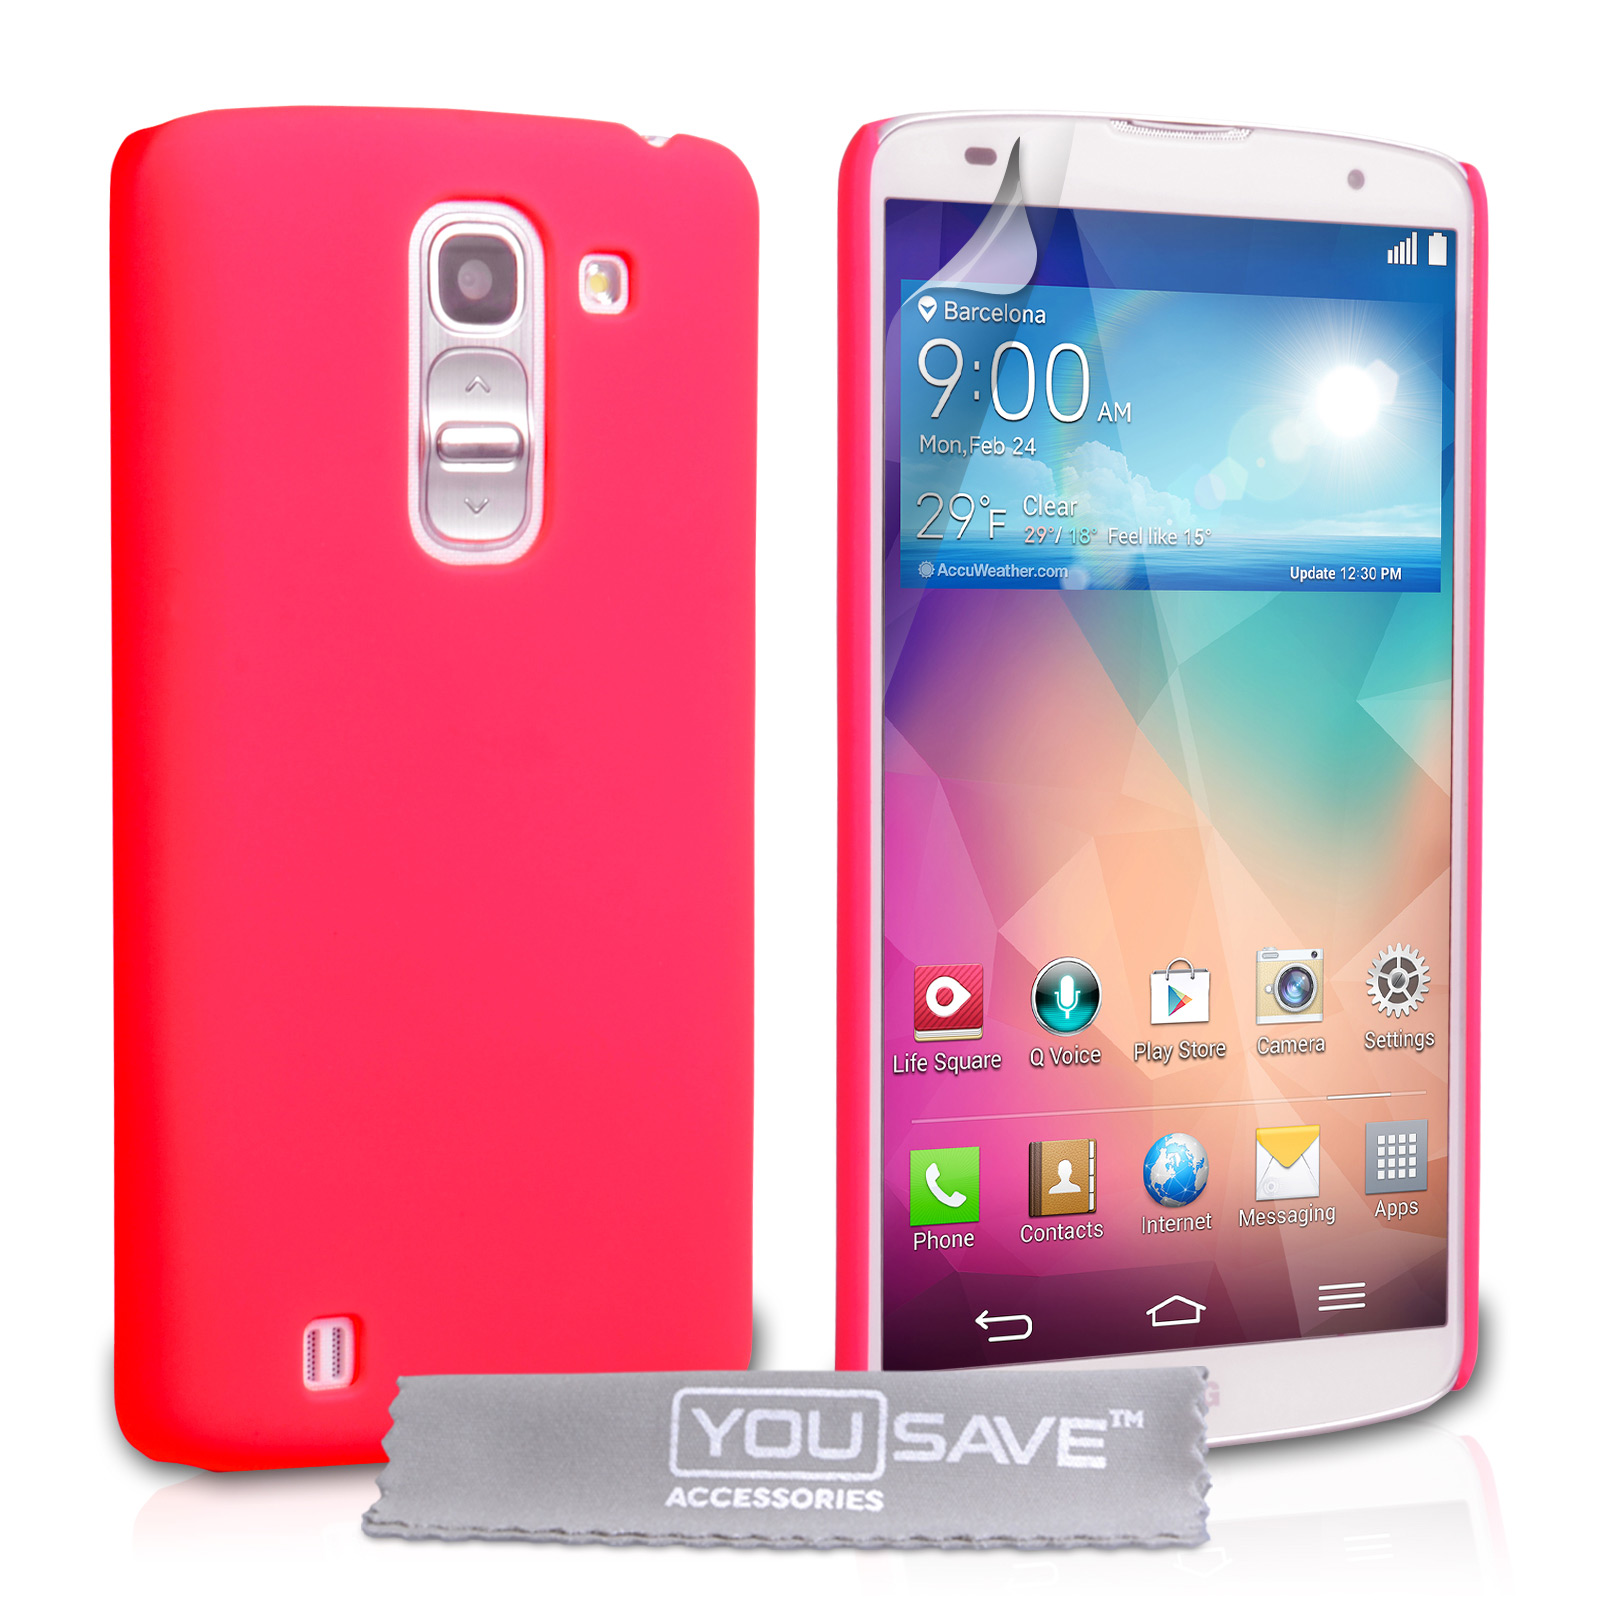 YouSave Accessories LG G Pro 2 Hard Hybrid Case - Hot Pink